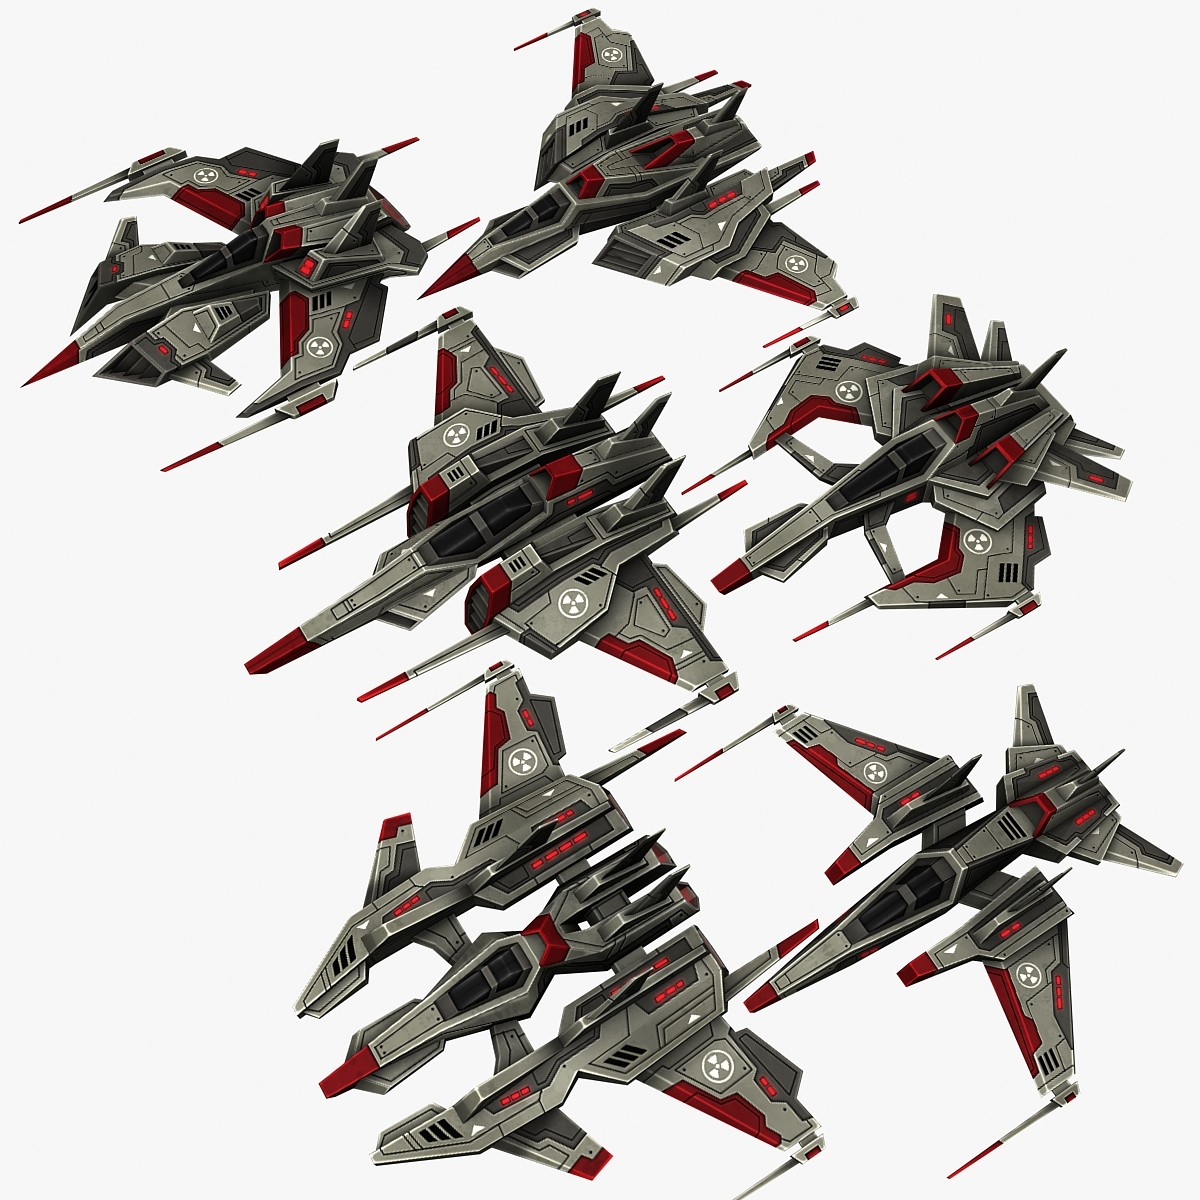 3d model of 6 dark fighters